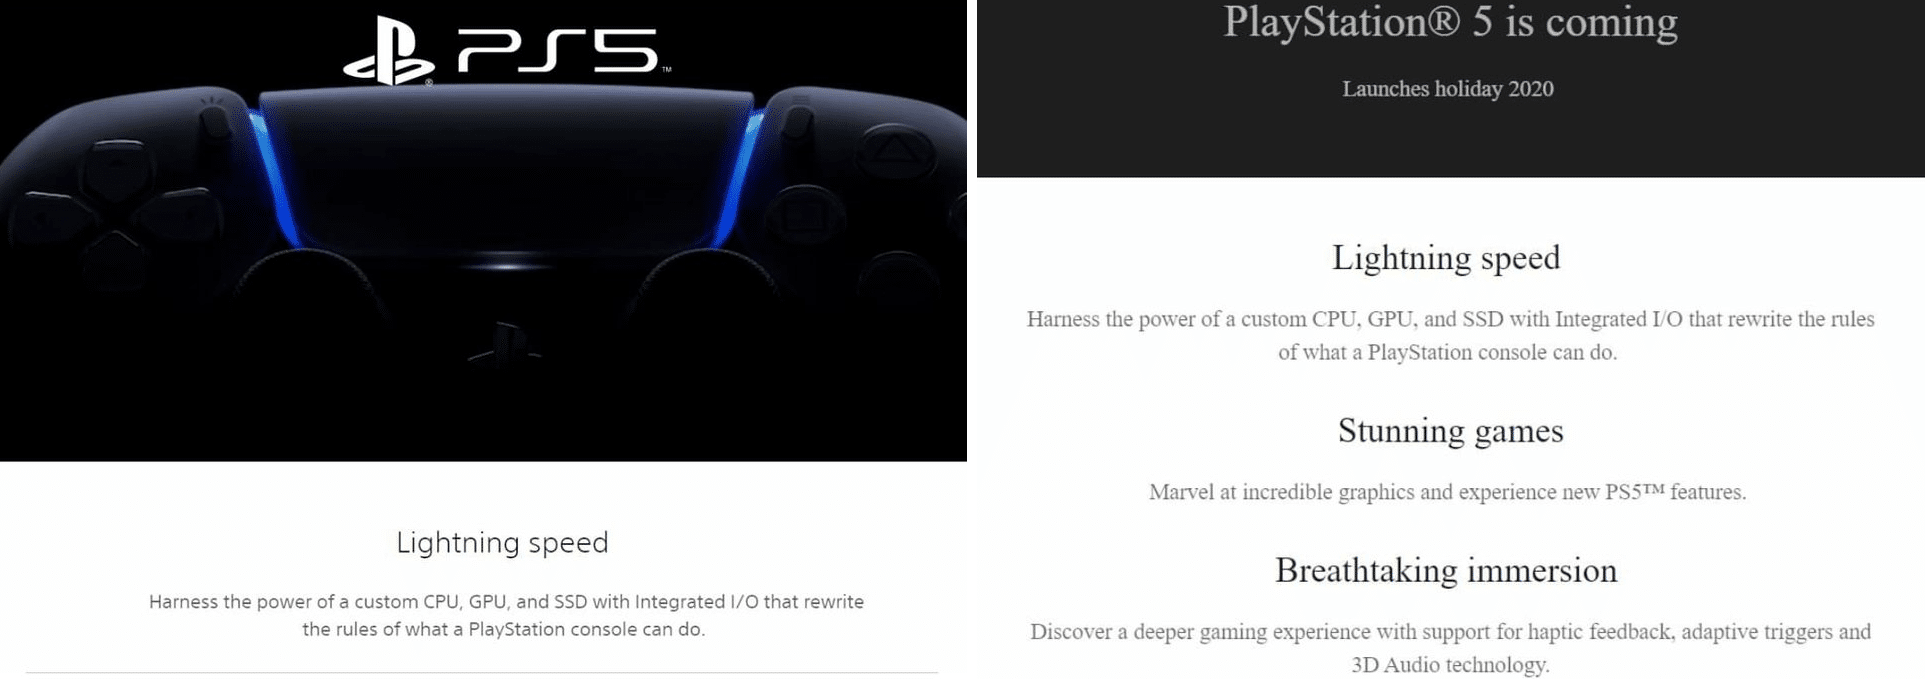 ps5 coming